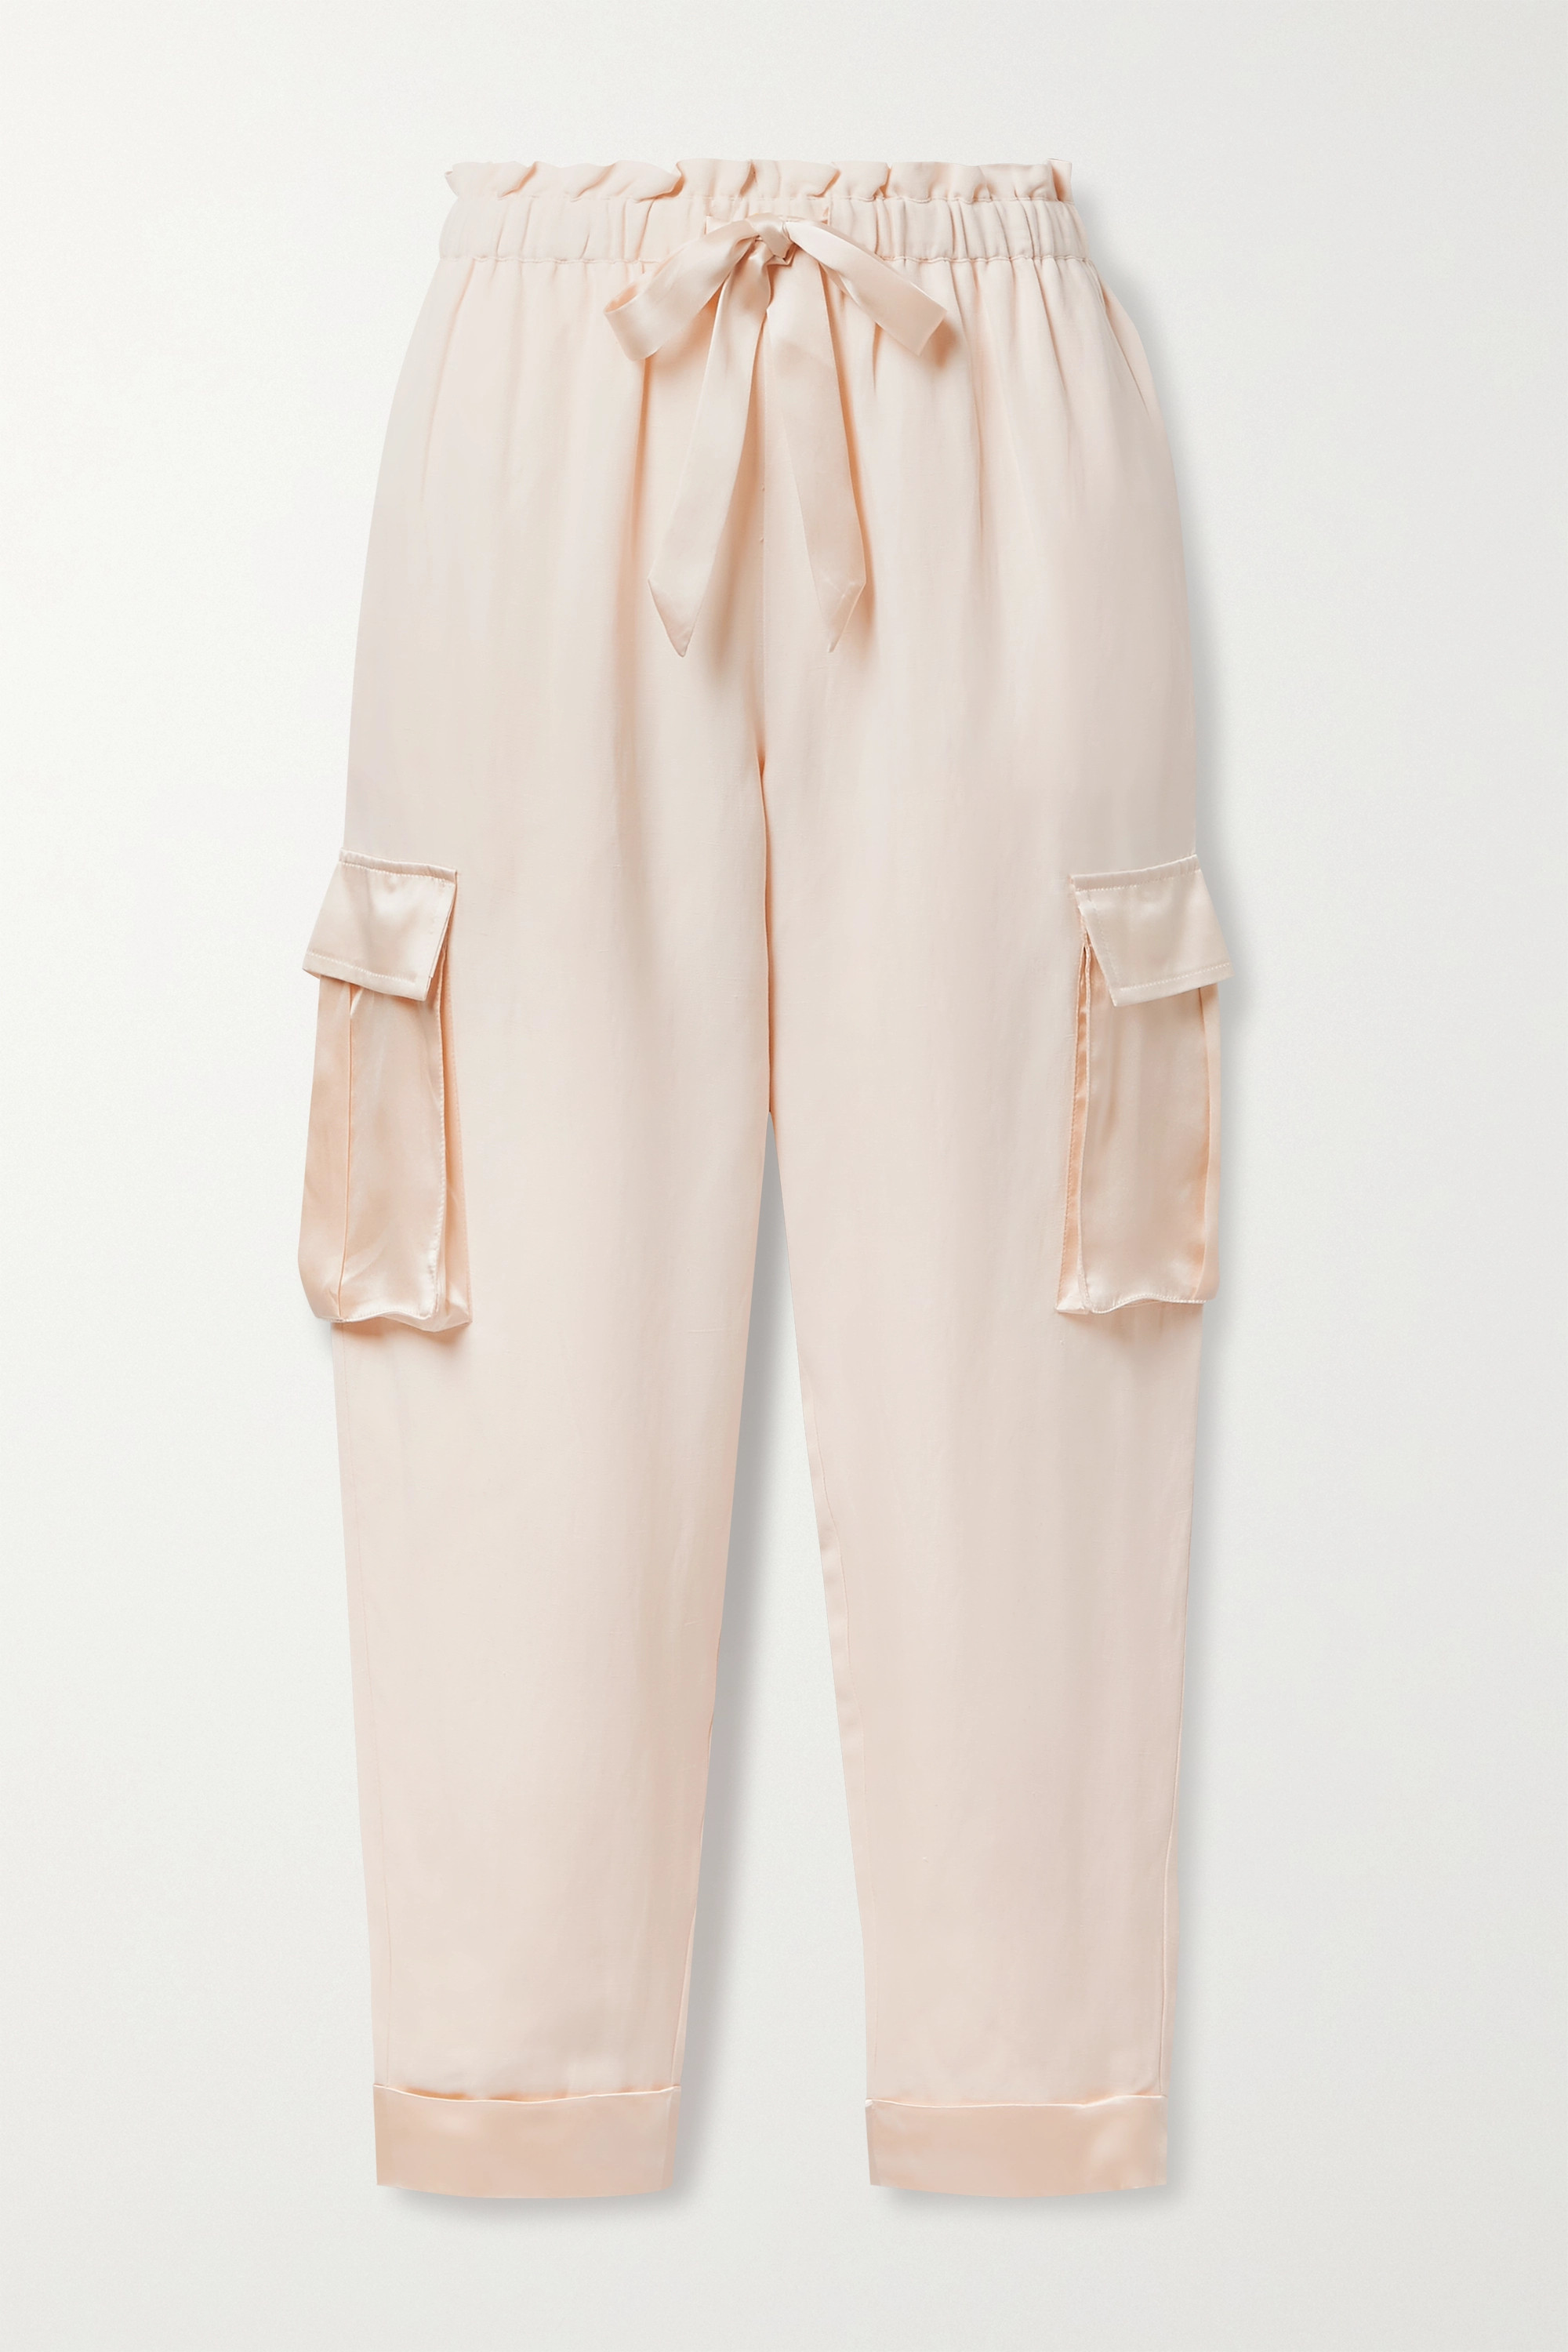 Cami NYC - The Harley satin-trimmed silk and linen-blend track pants